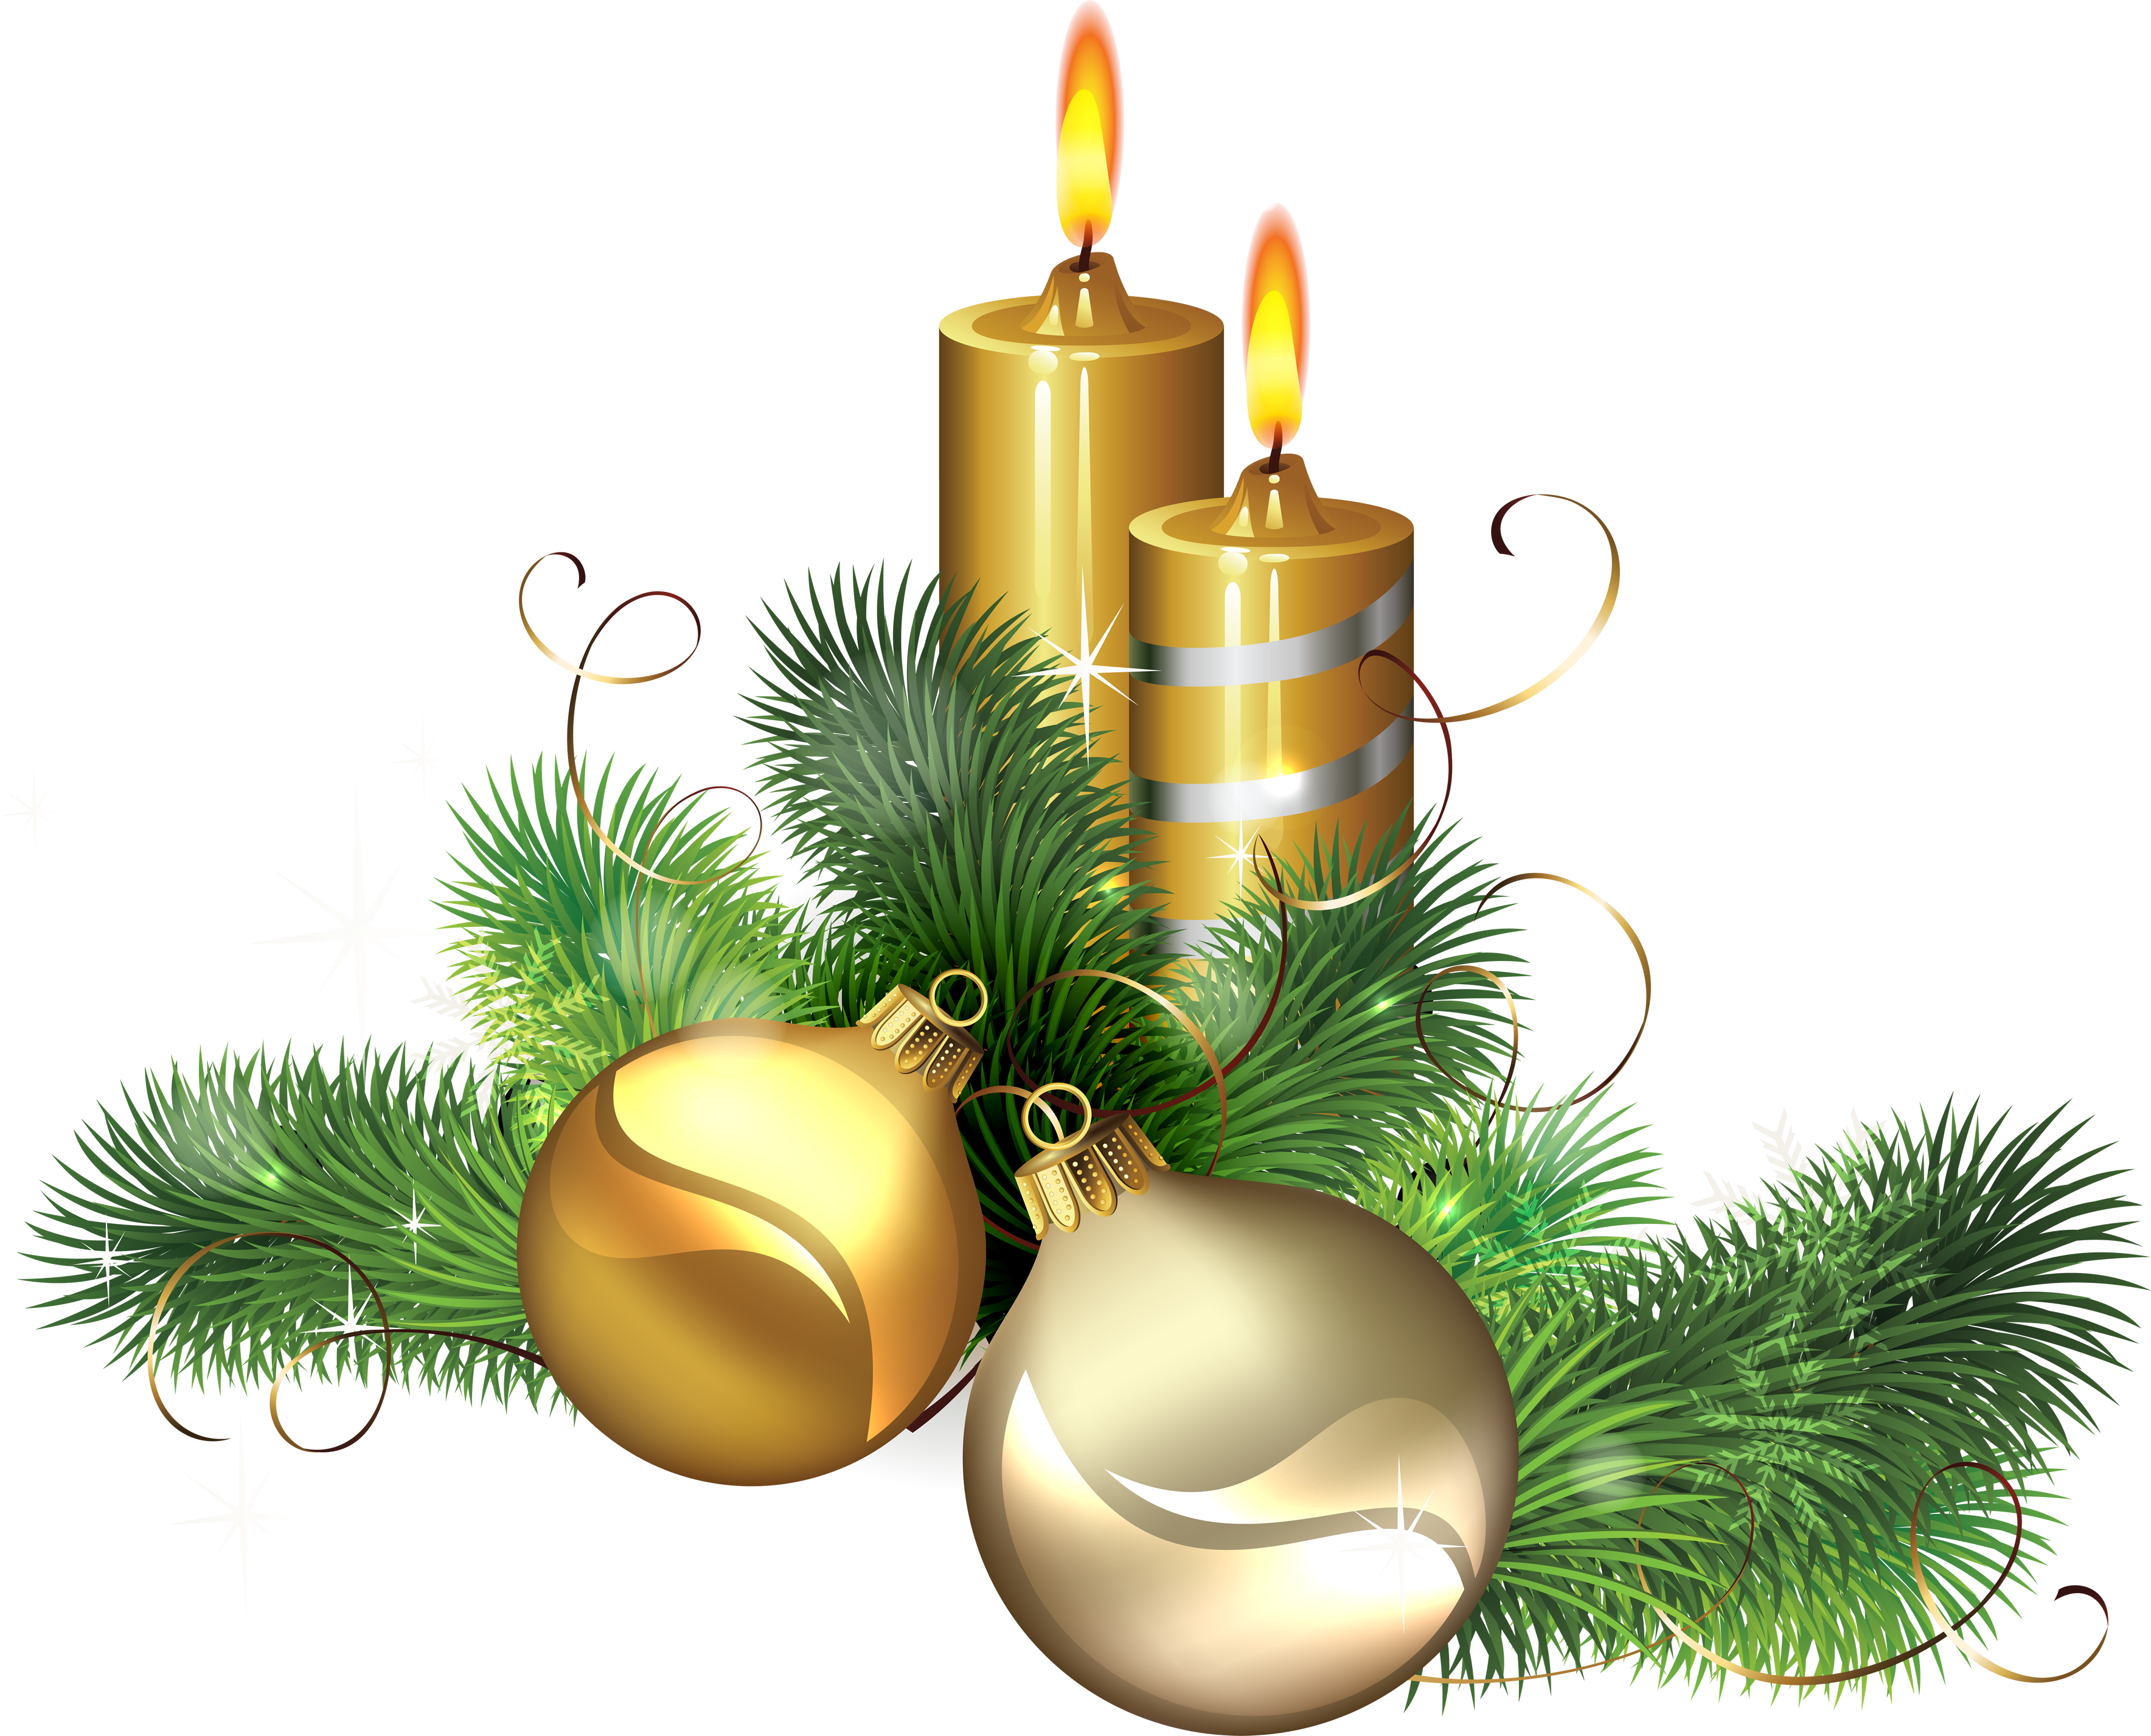 Bing clipart christmas candle clip art freeuse download Pin by Debra Thompson on winter | Christmas candle, Christmas ... clip art freeuse download